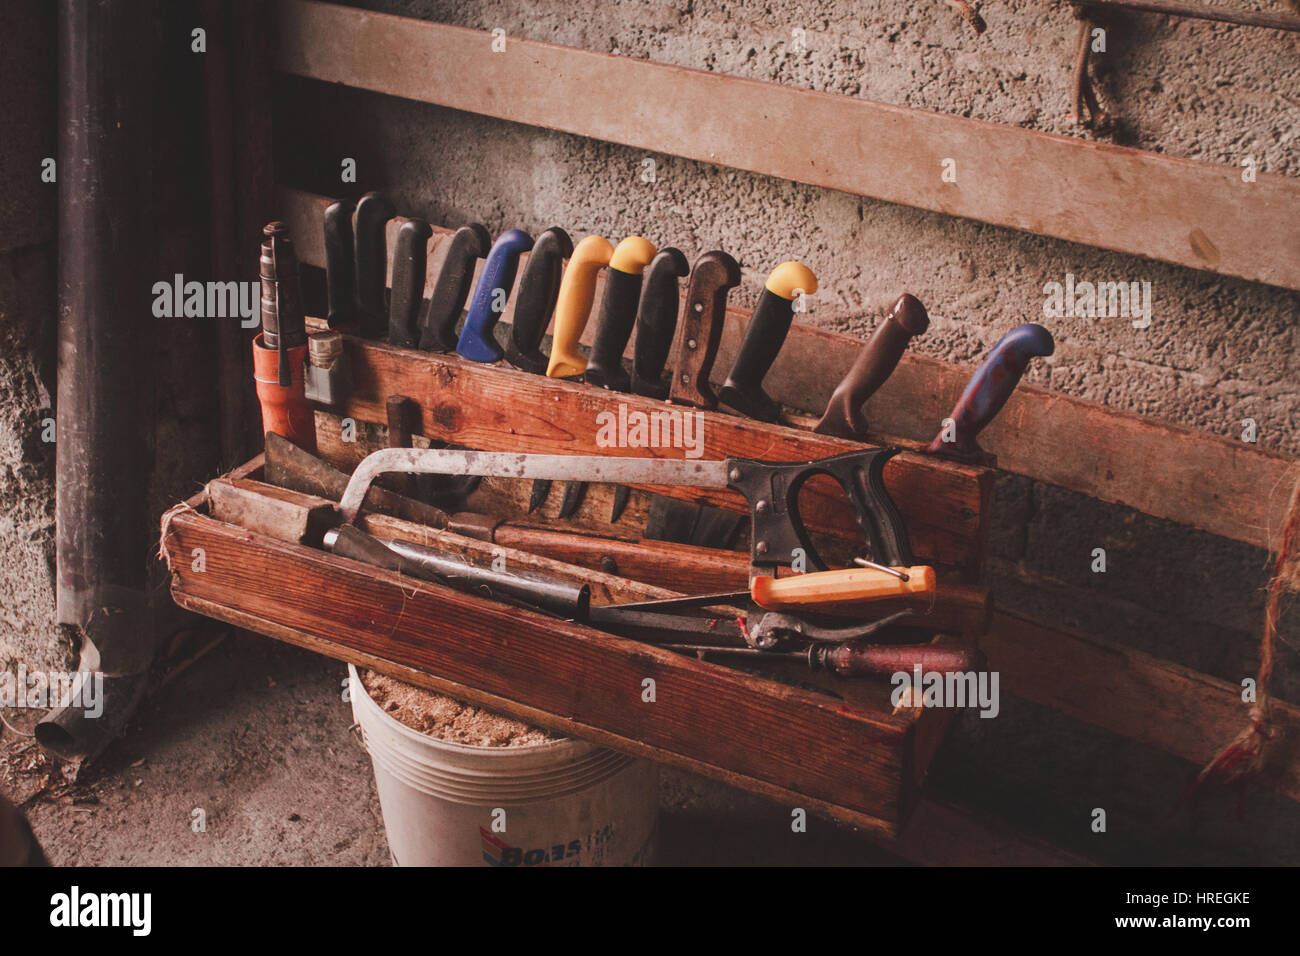 Knifes and tools at a slaughter in Alba, which is located in the province of Piedmont, Italy. - Stock Image